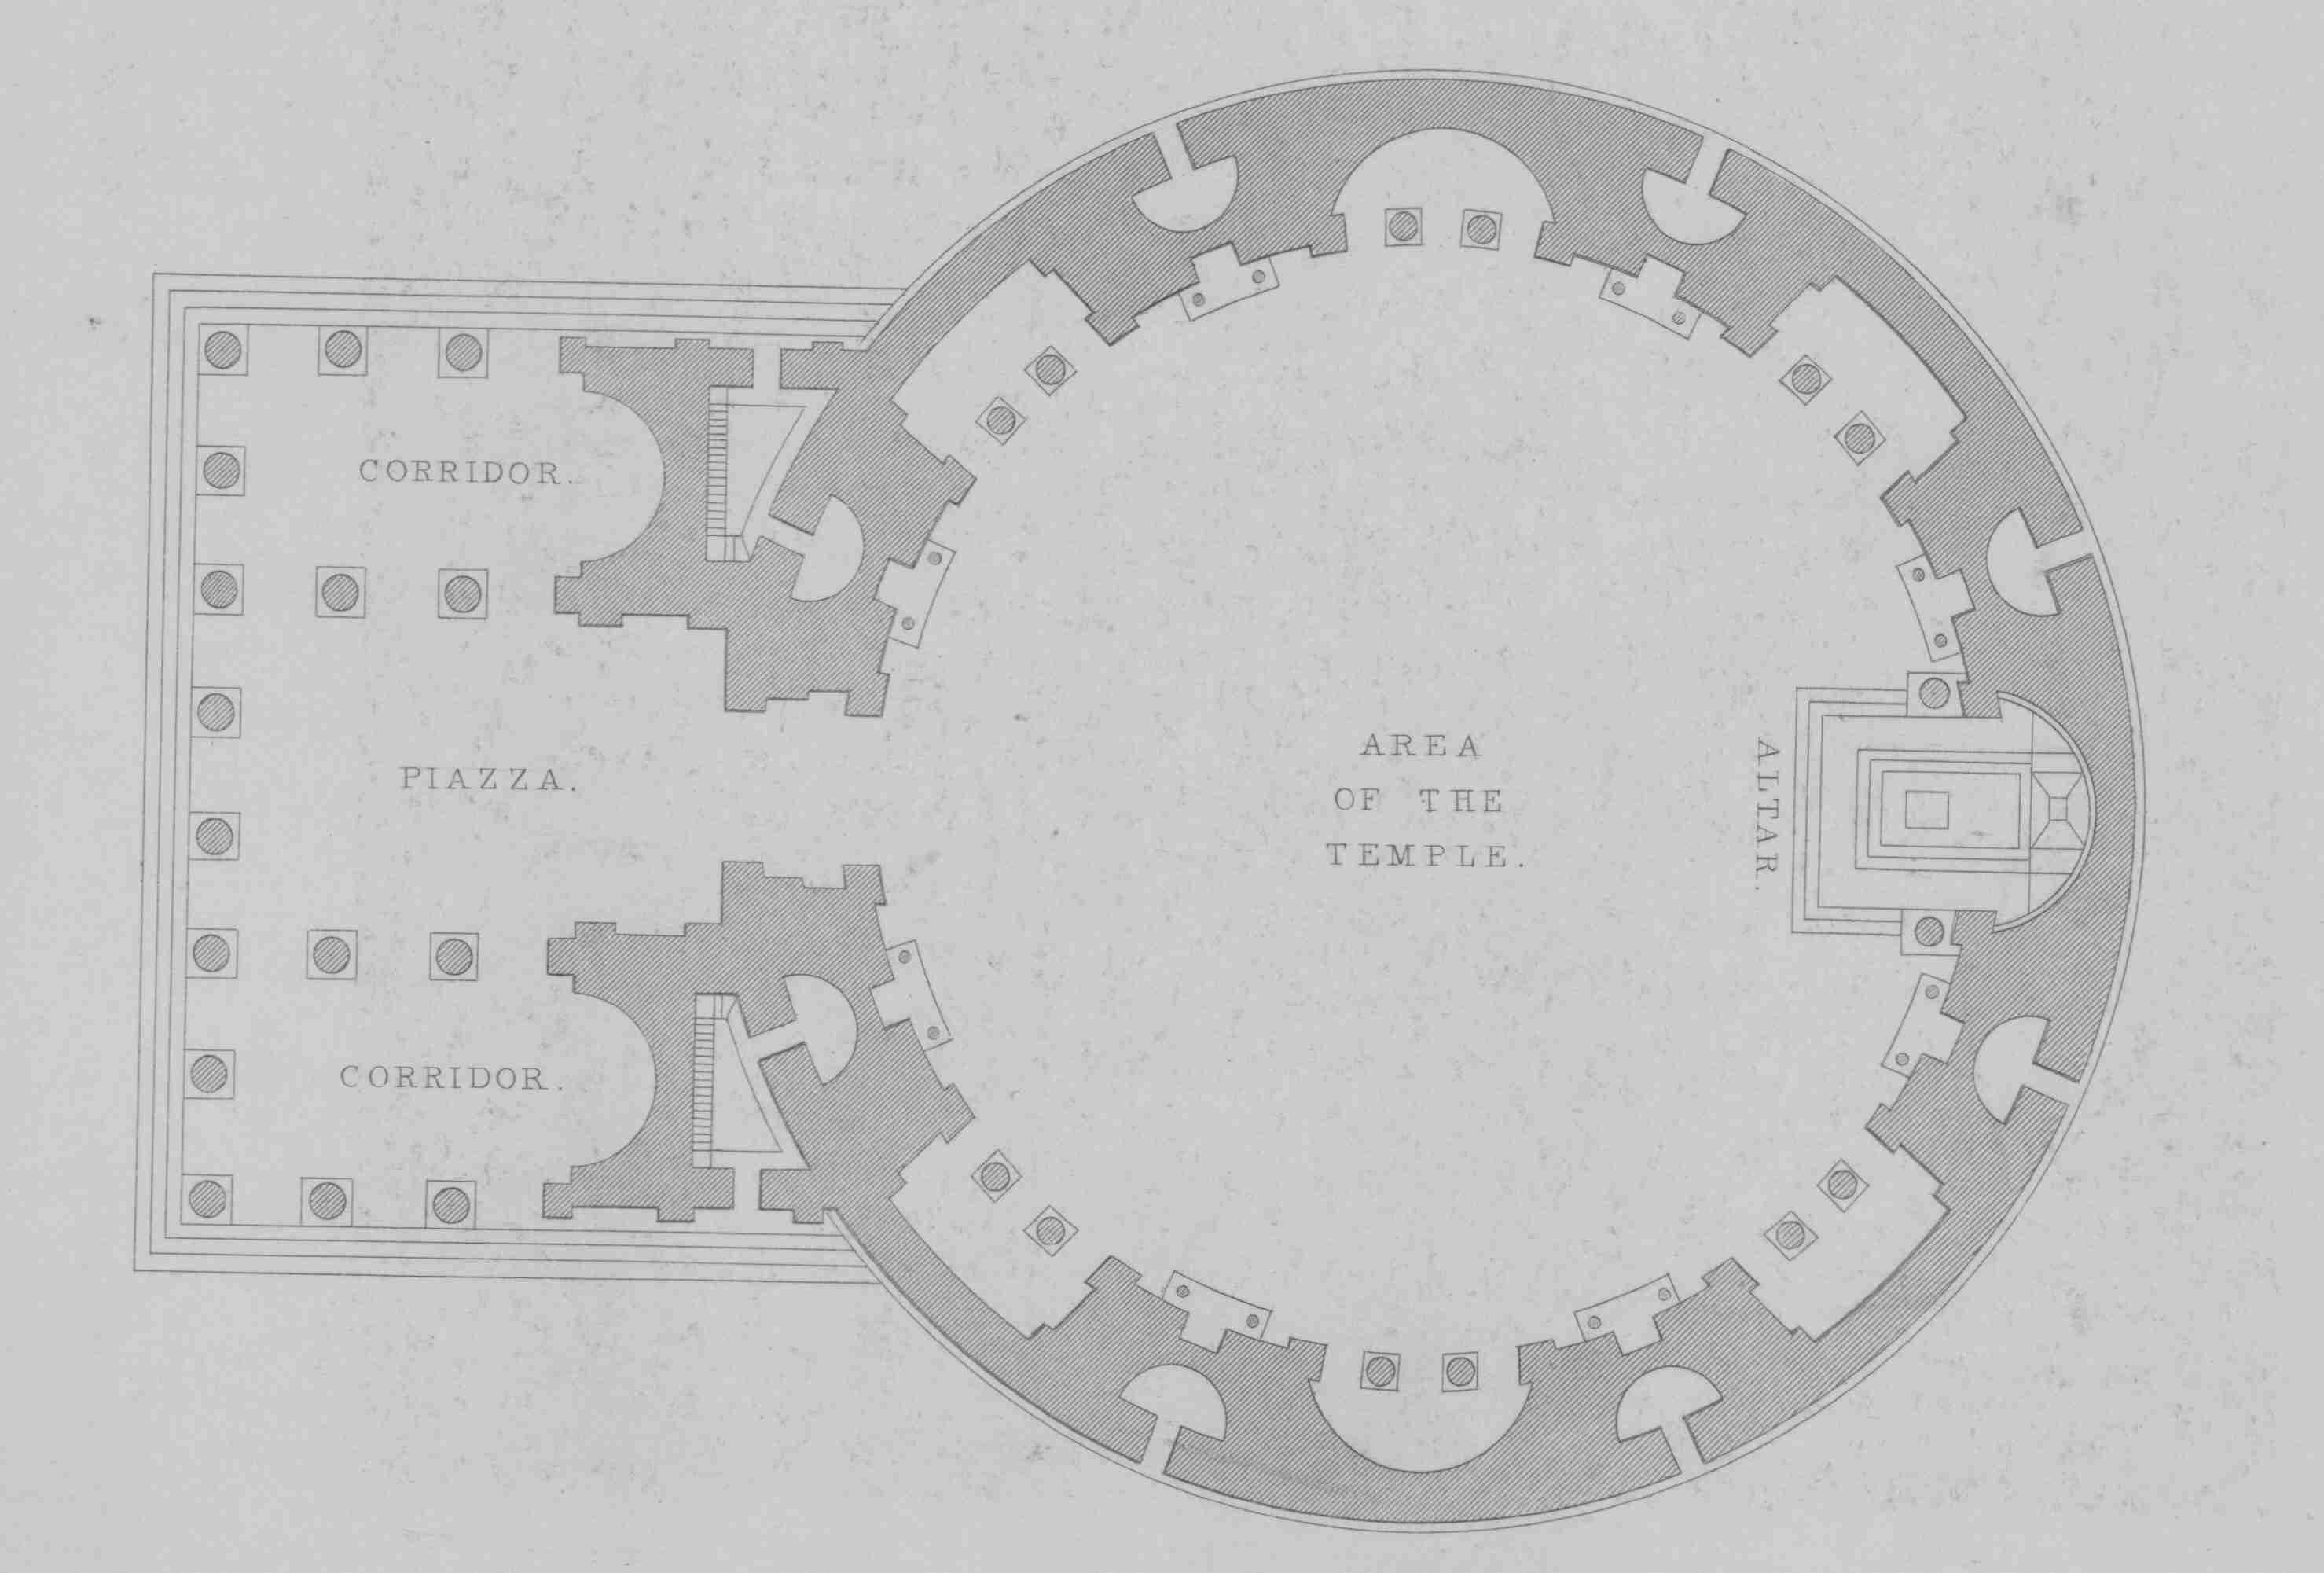 floor plan with circular Area of the Temple with corridors and piazza to the left